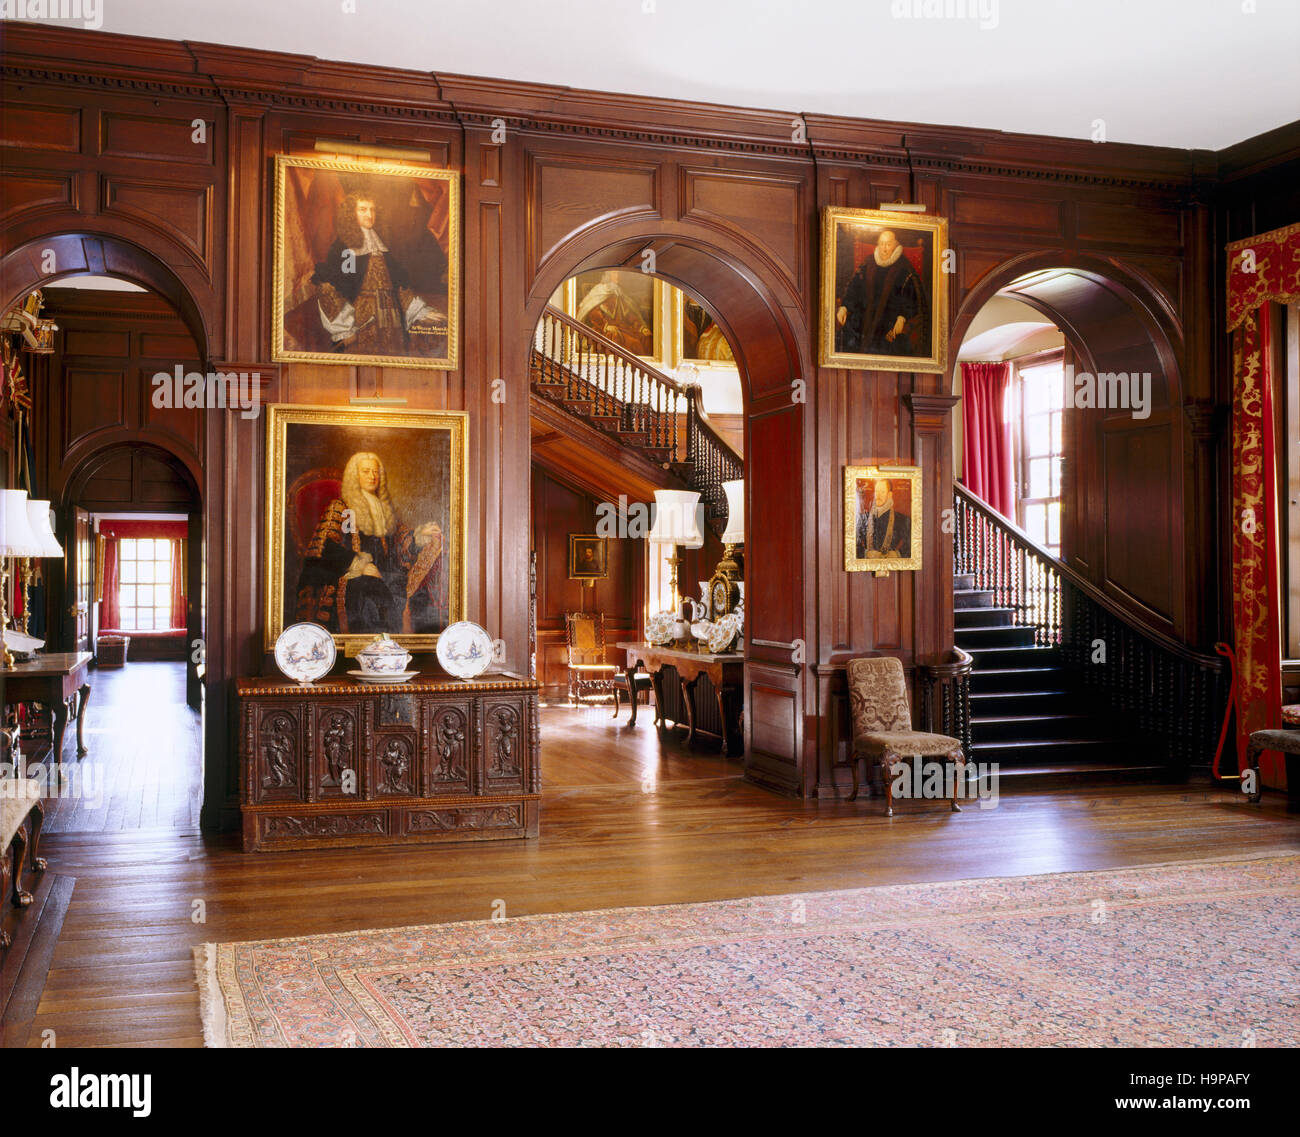 View of the entrance Hall at Antony showing the staircase, three arches , stained oak panelling, paintings and early - Stock Image